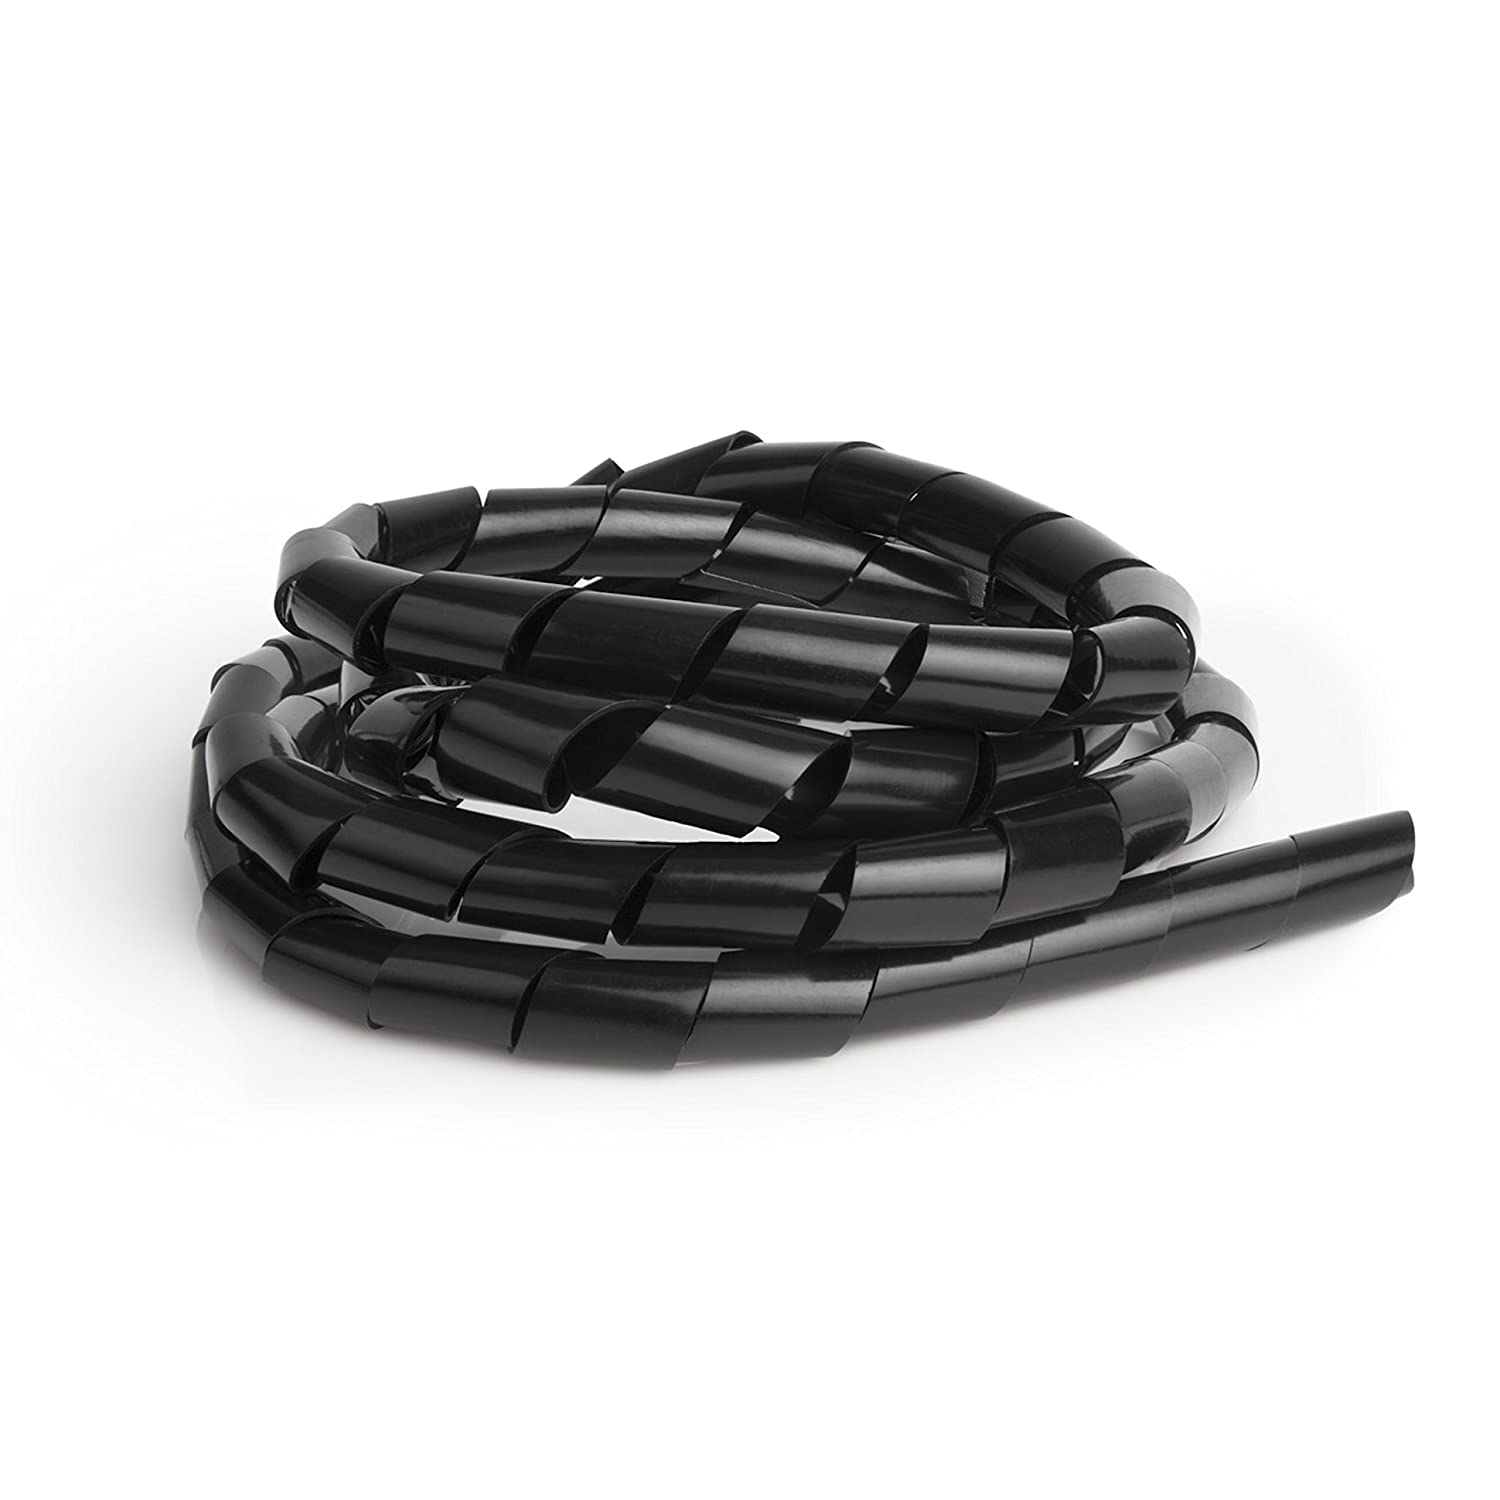 Amazon.com : Dotz Spiral Tube for Cord and Cable Management, 6-Feet ...